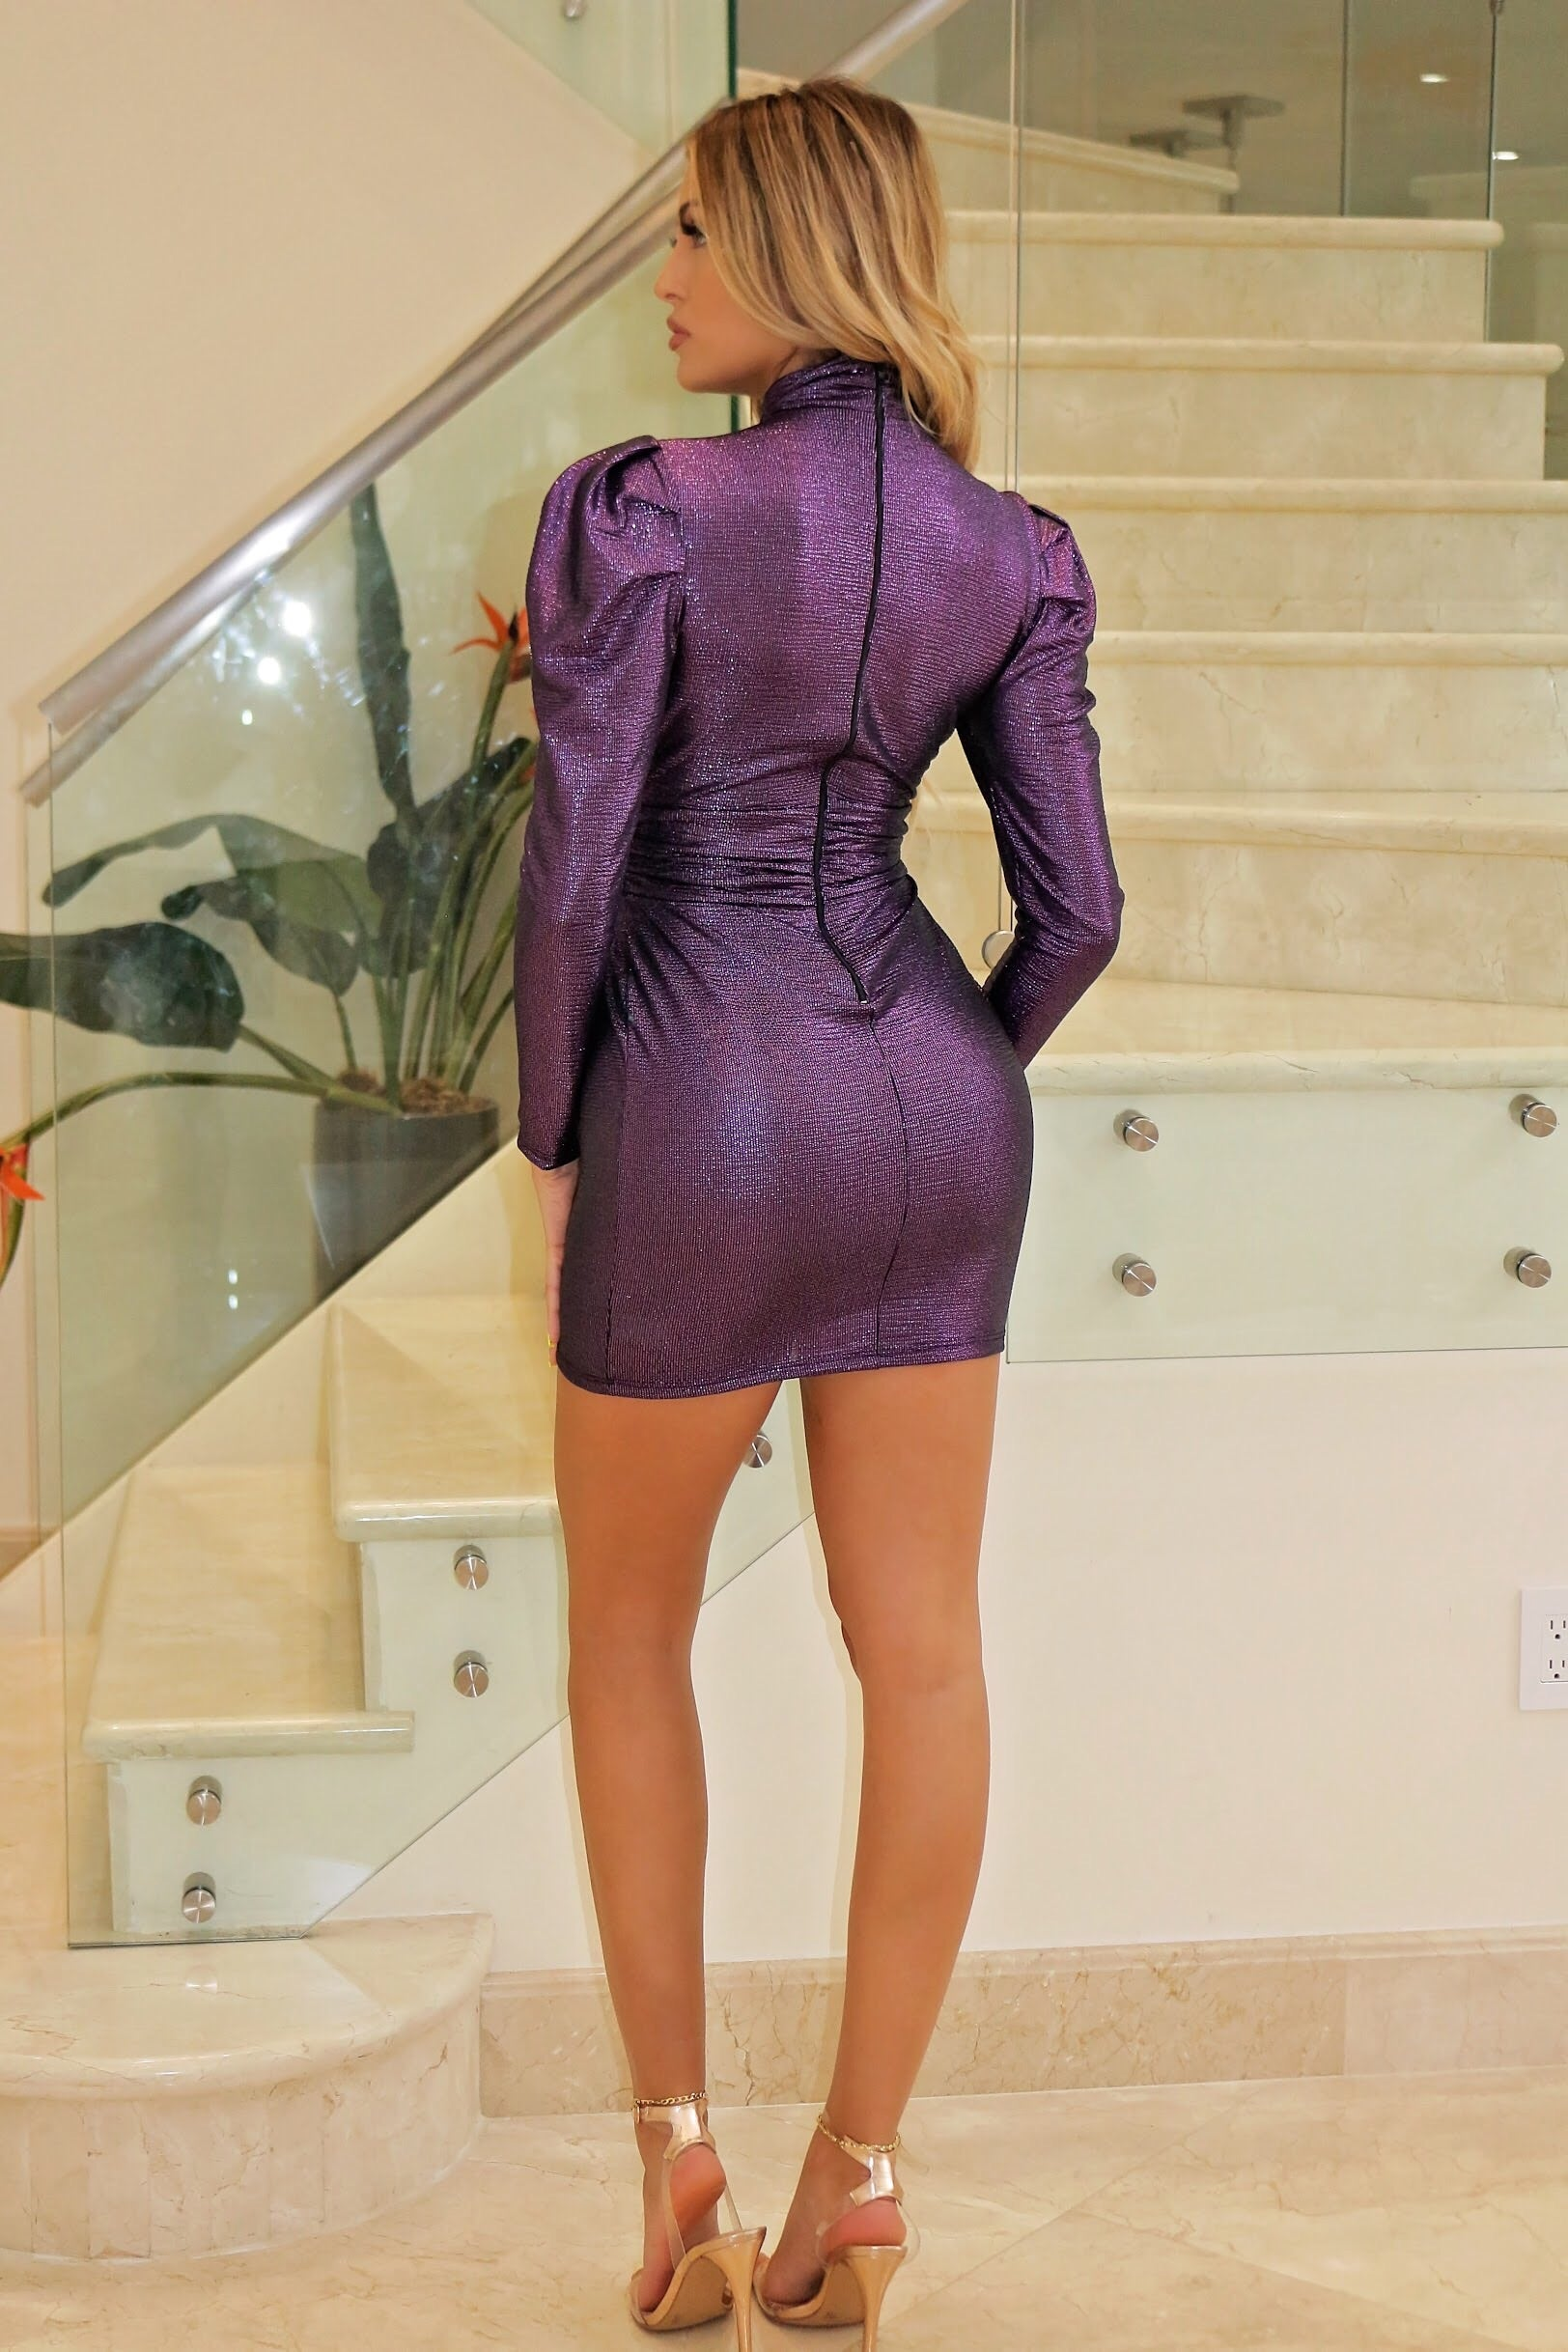 Clair Sexy Classy Showing Out - Purple Mini Dress - Semai House Of fashion